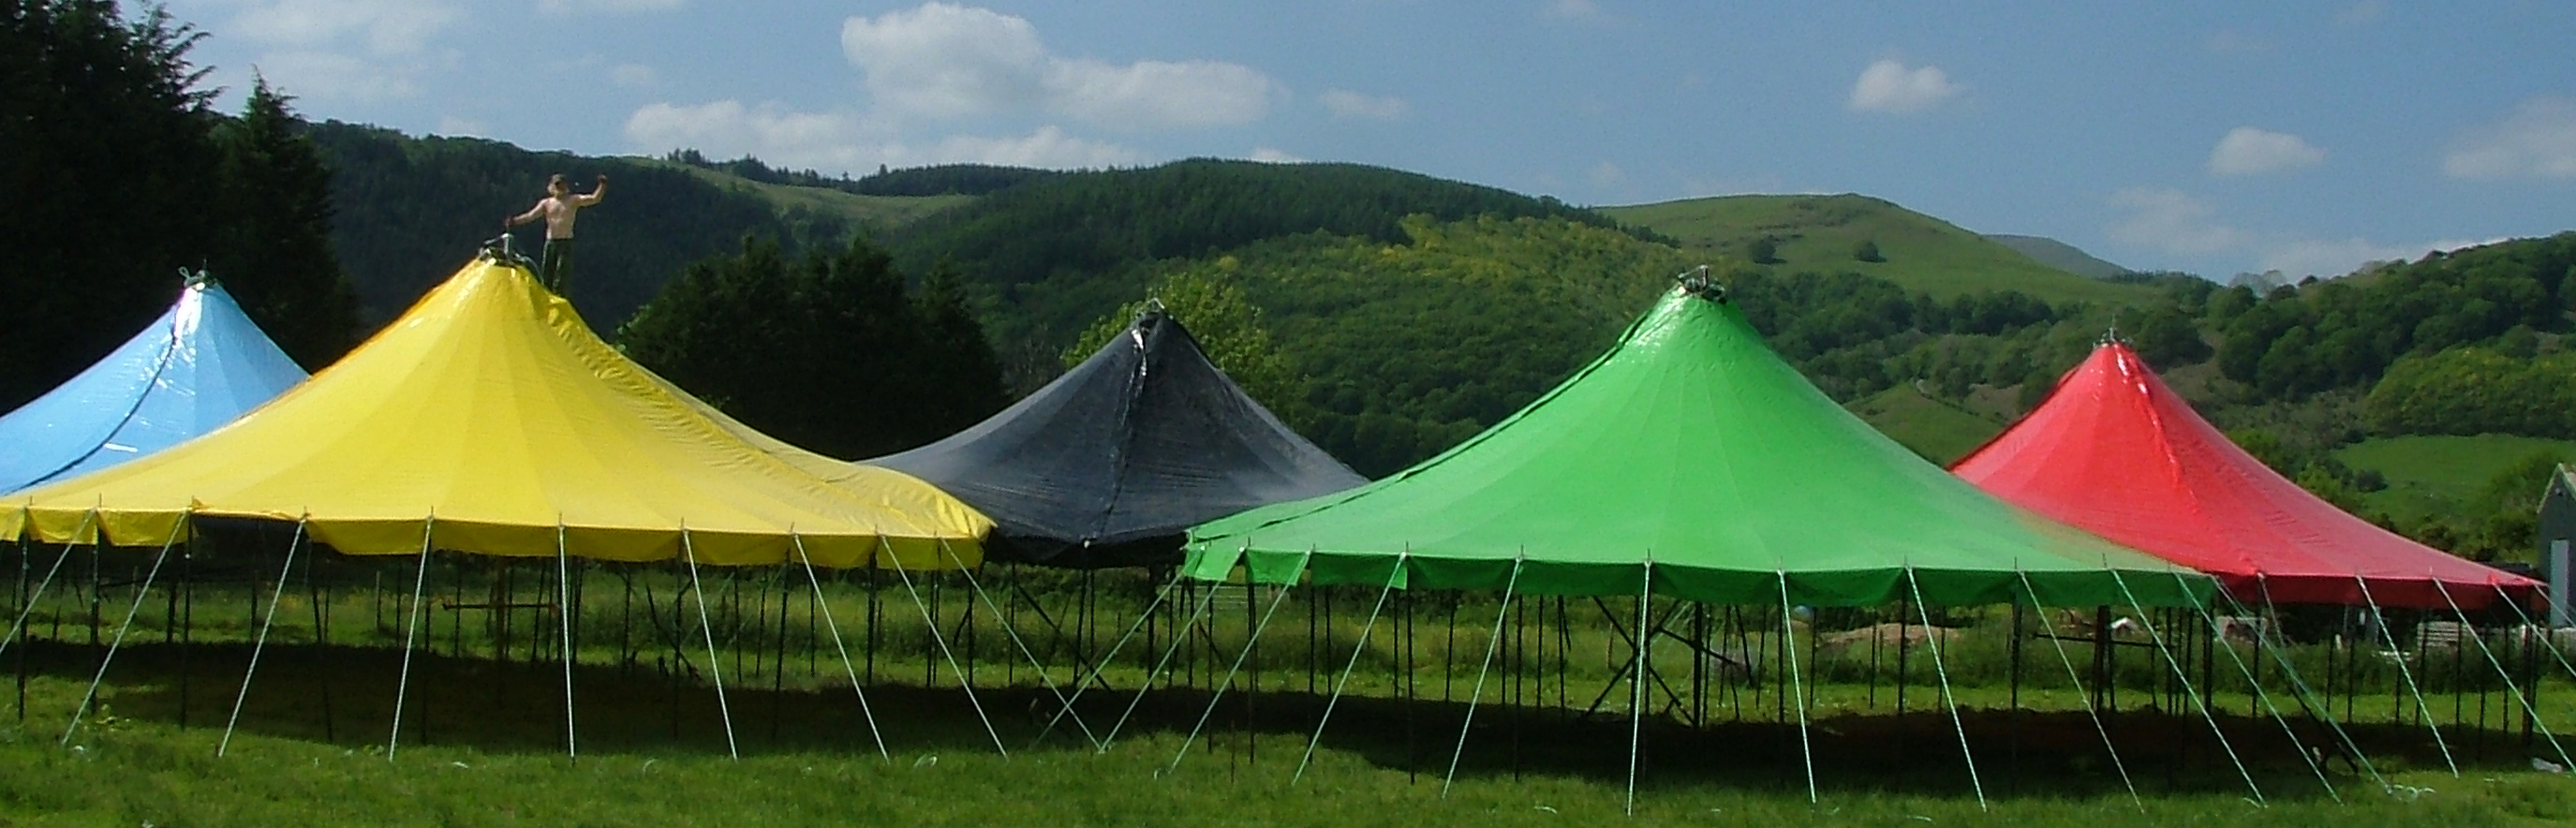 ... special saddle-shaped event marquees including the multi-ring Olympic tent the Glastonbury theatre stage circus tents and many more. & Roustabout Event u0026 Stage - Timber Intent Tensile Structures